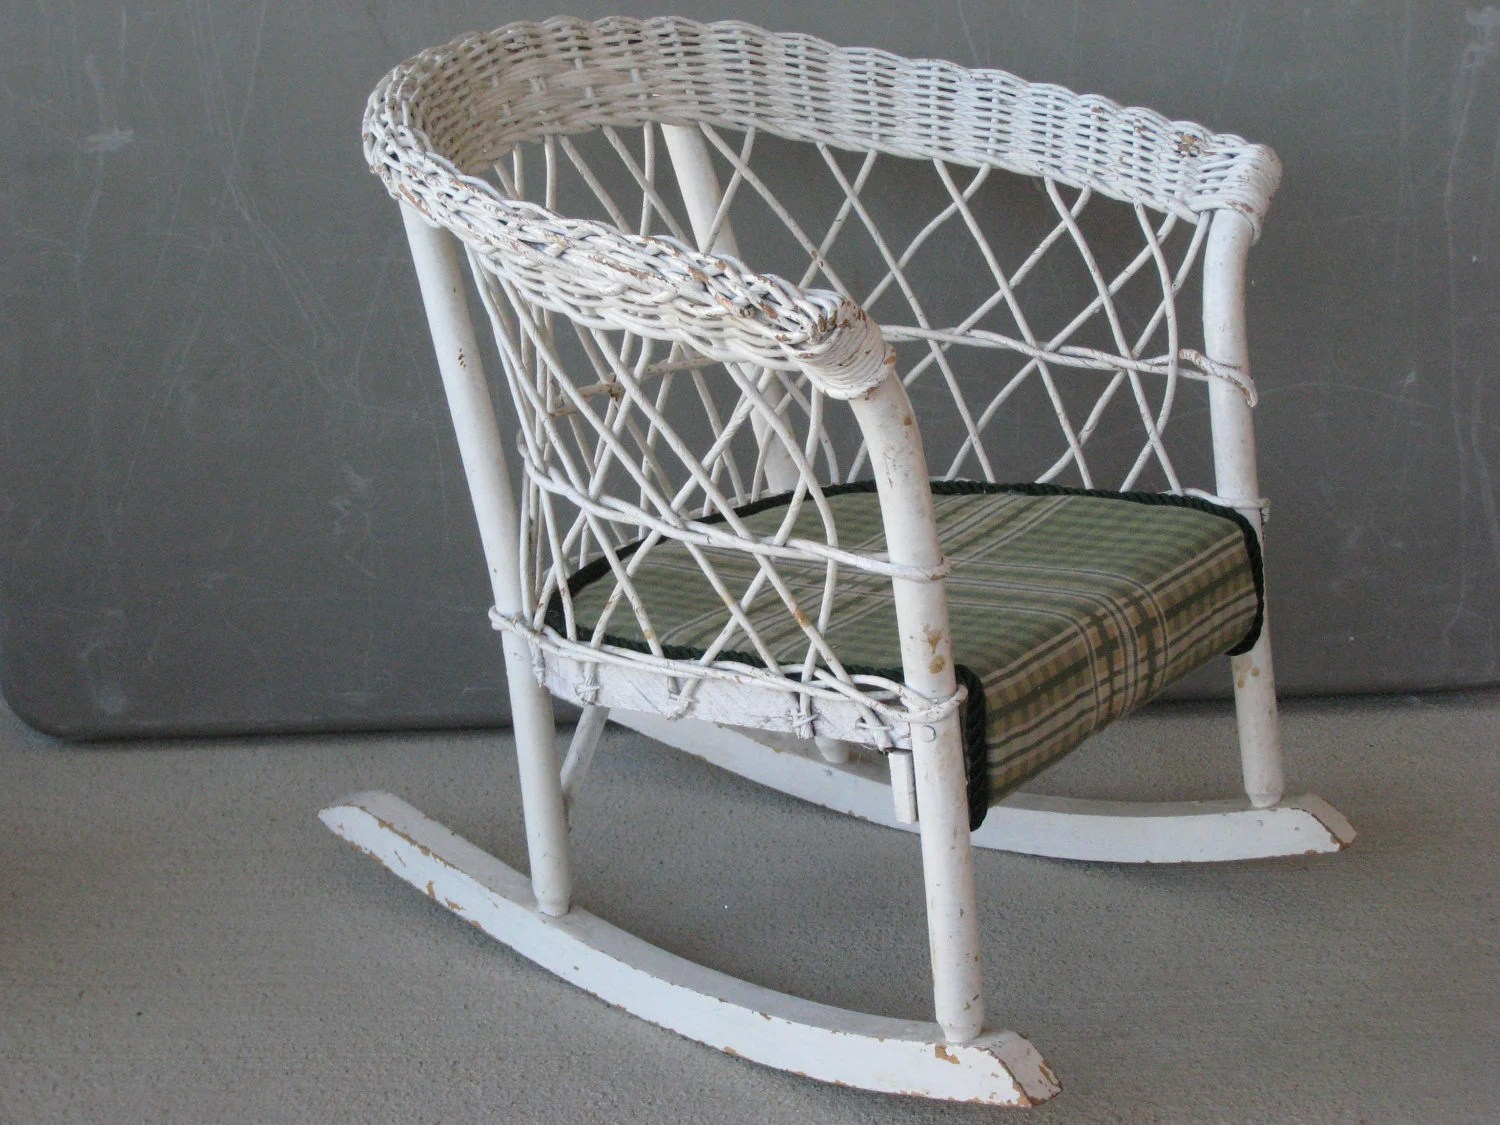 White Wicker Rocking Chair Antique Wicker Rocker Rocking Chair Child Size 0218 W